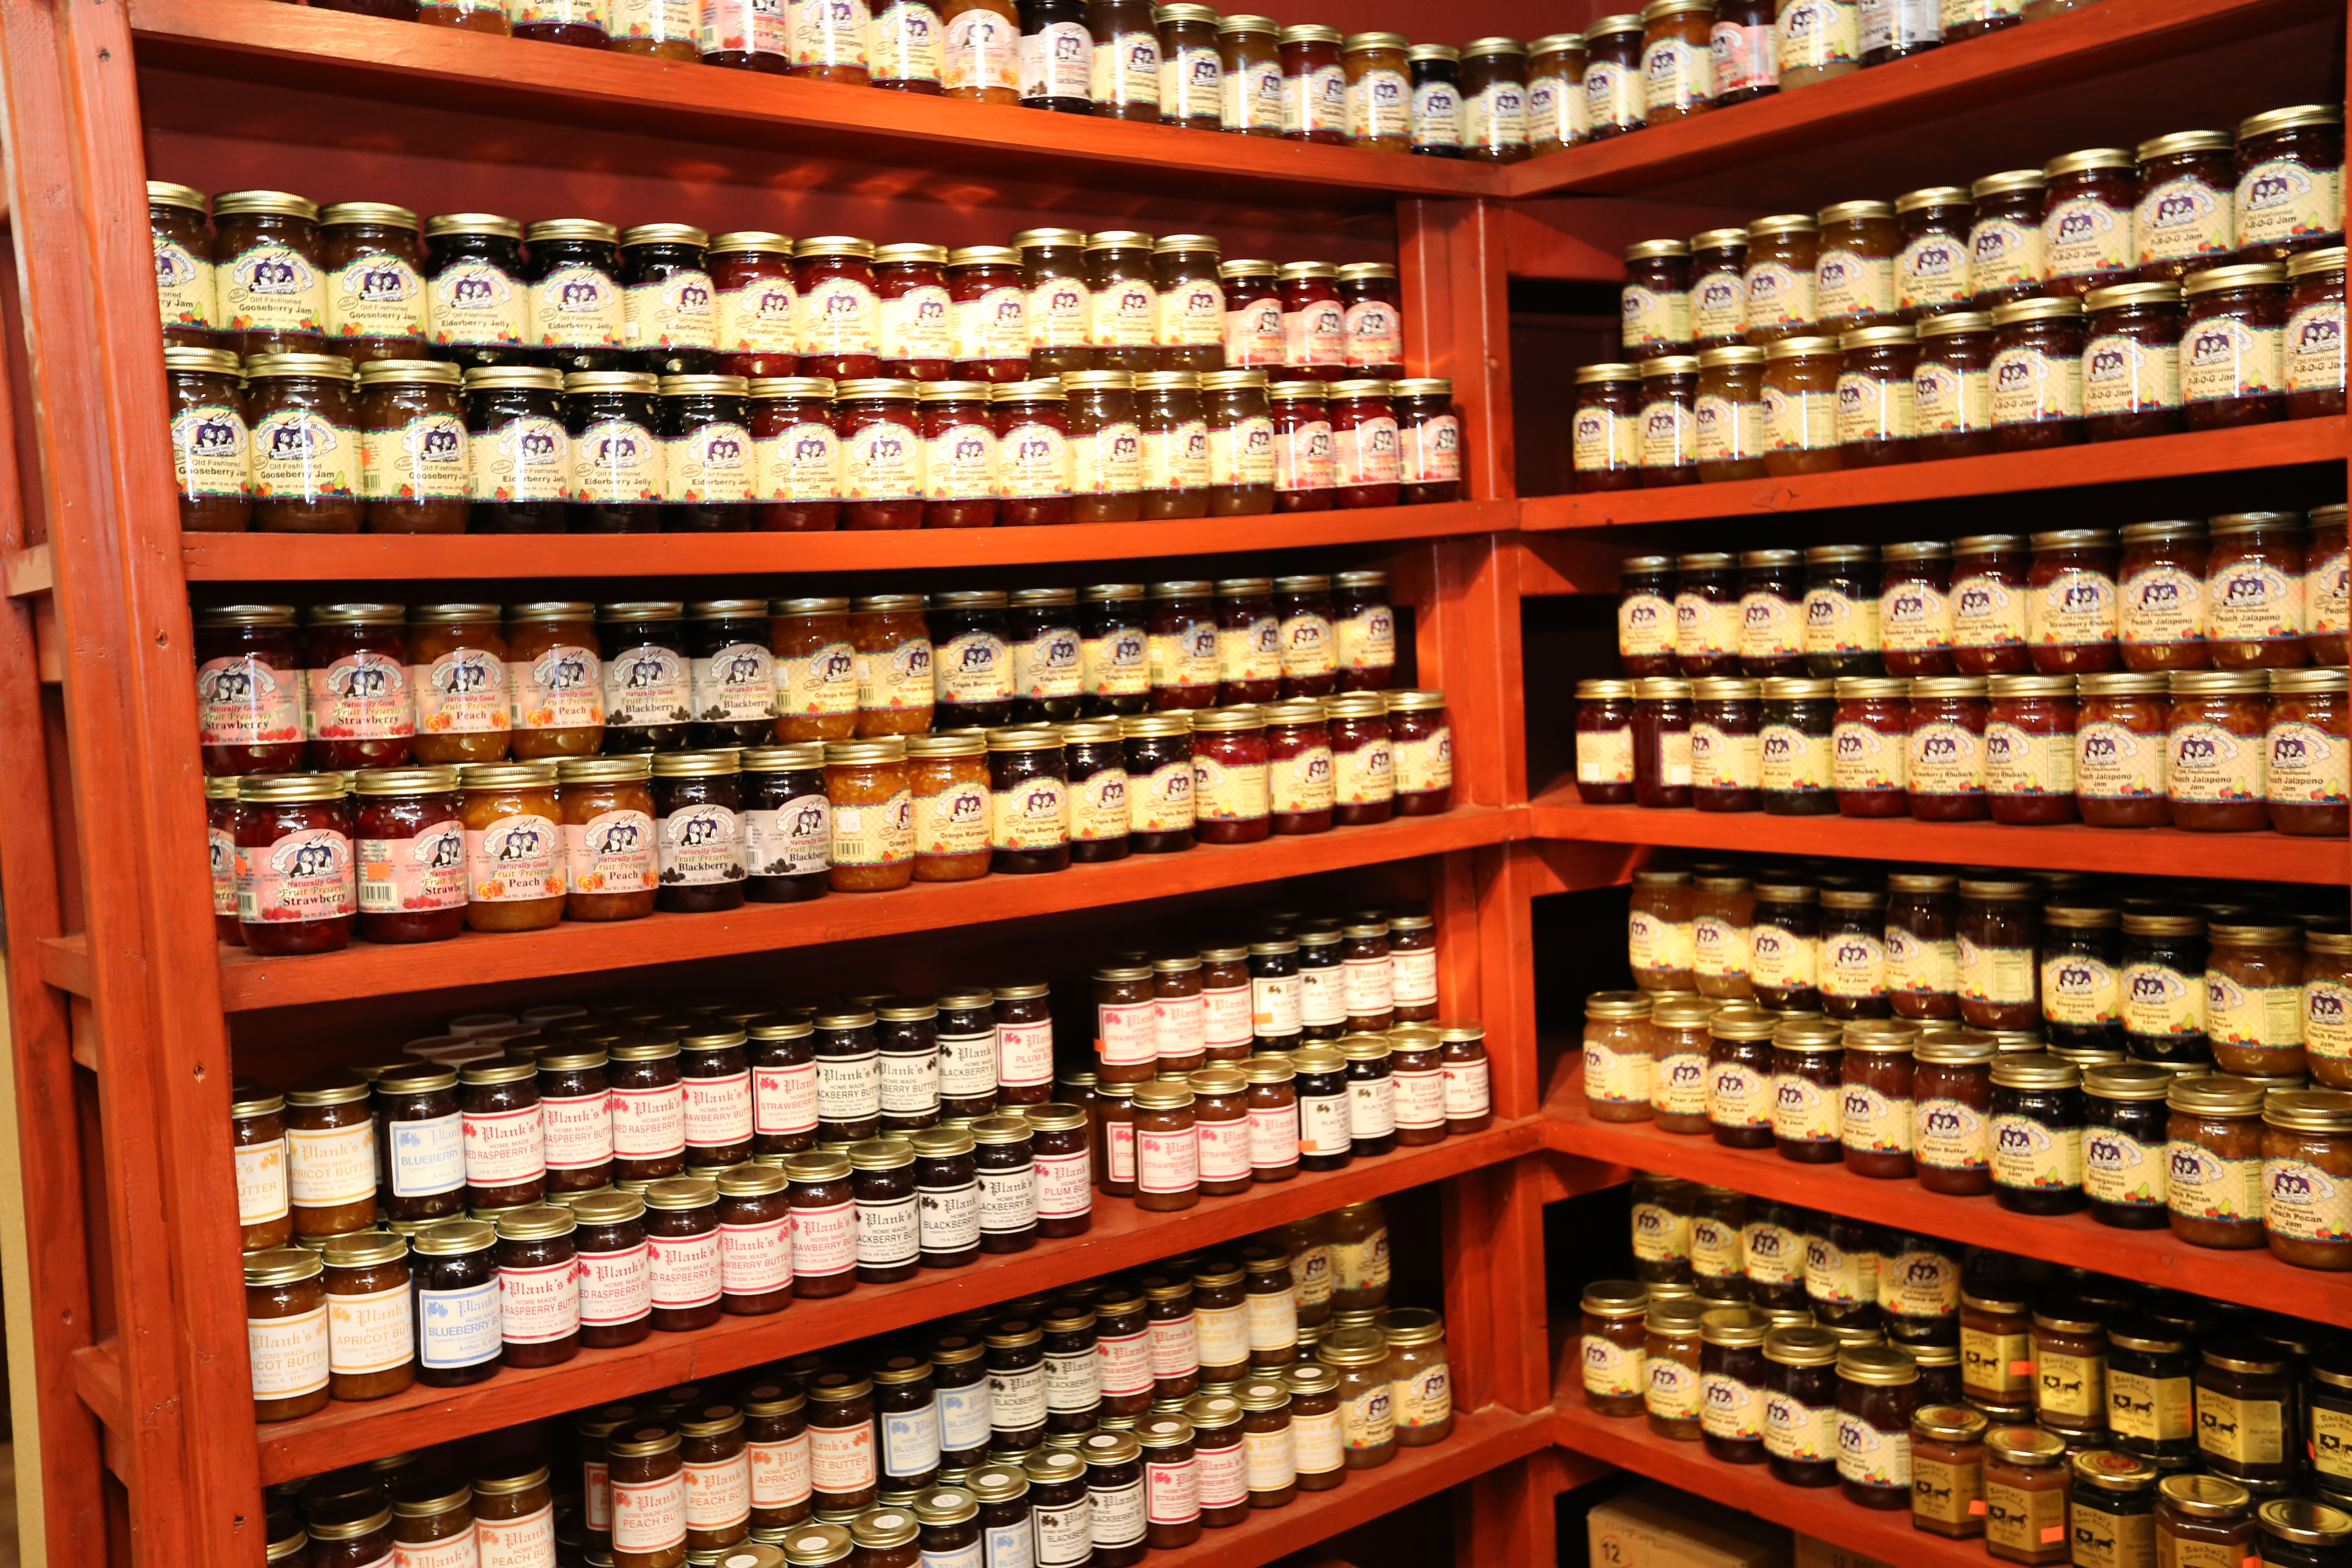 Rows of Jellies and Jams